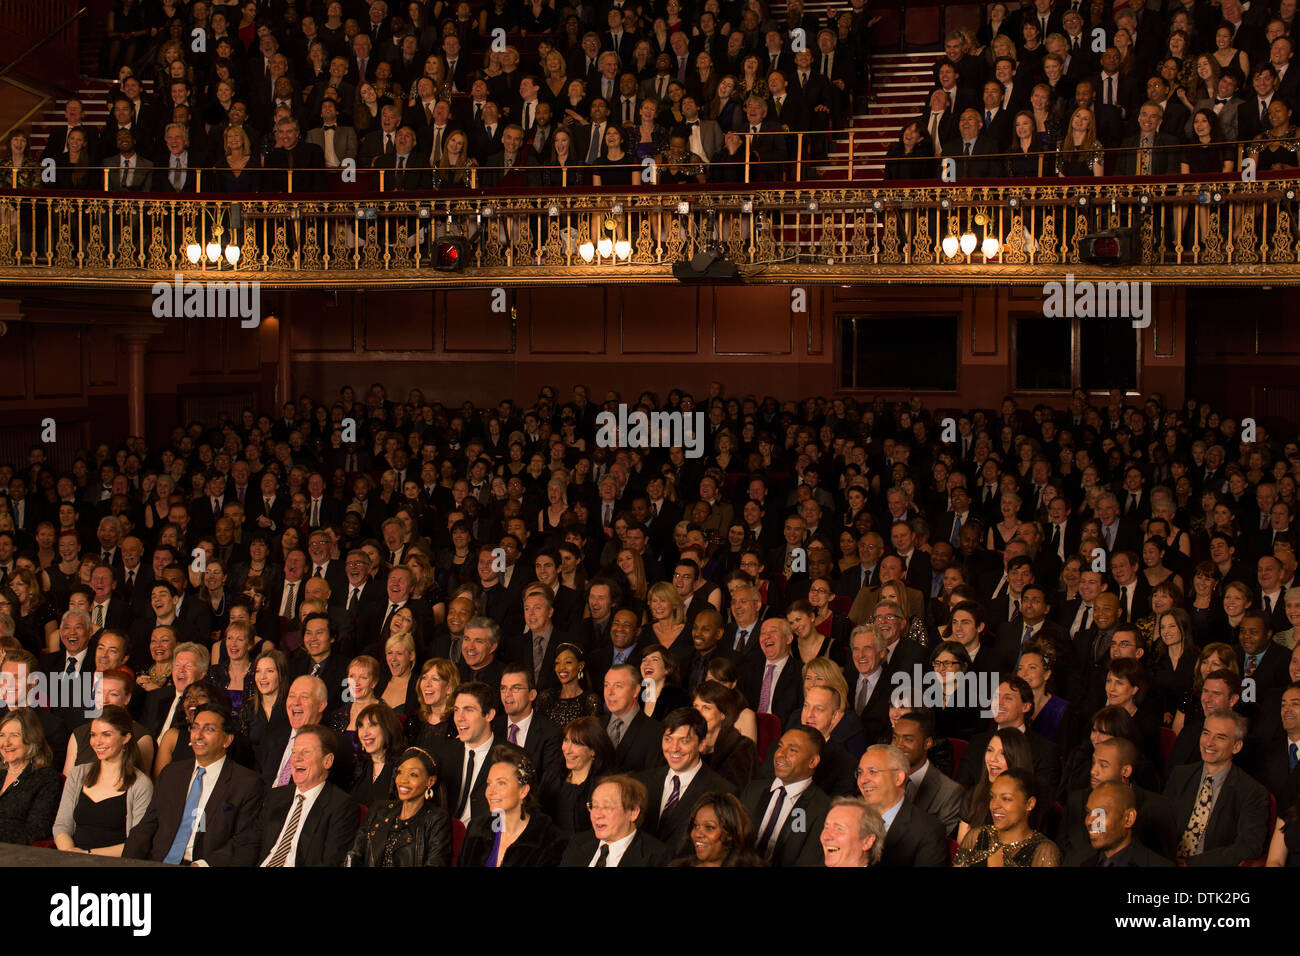 Audience sitting in theater - Stock Image